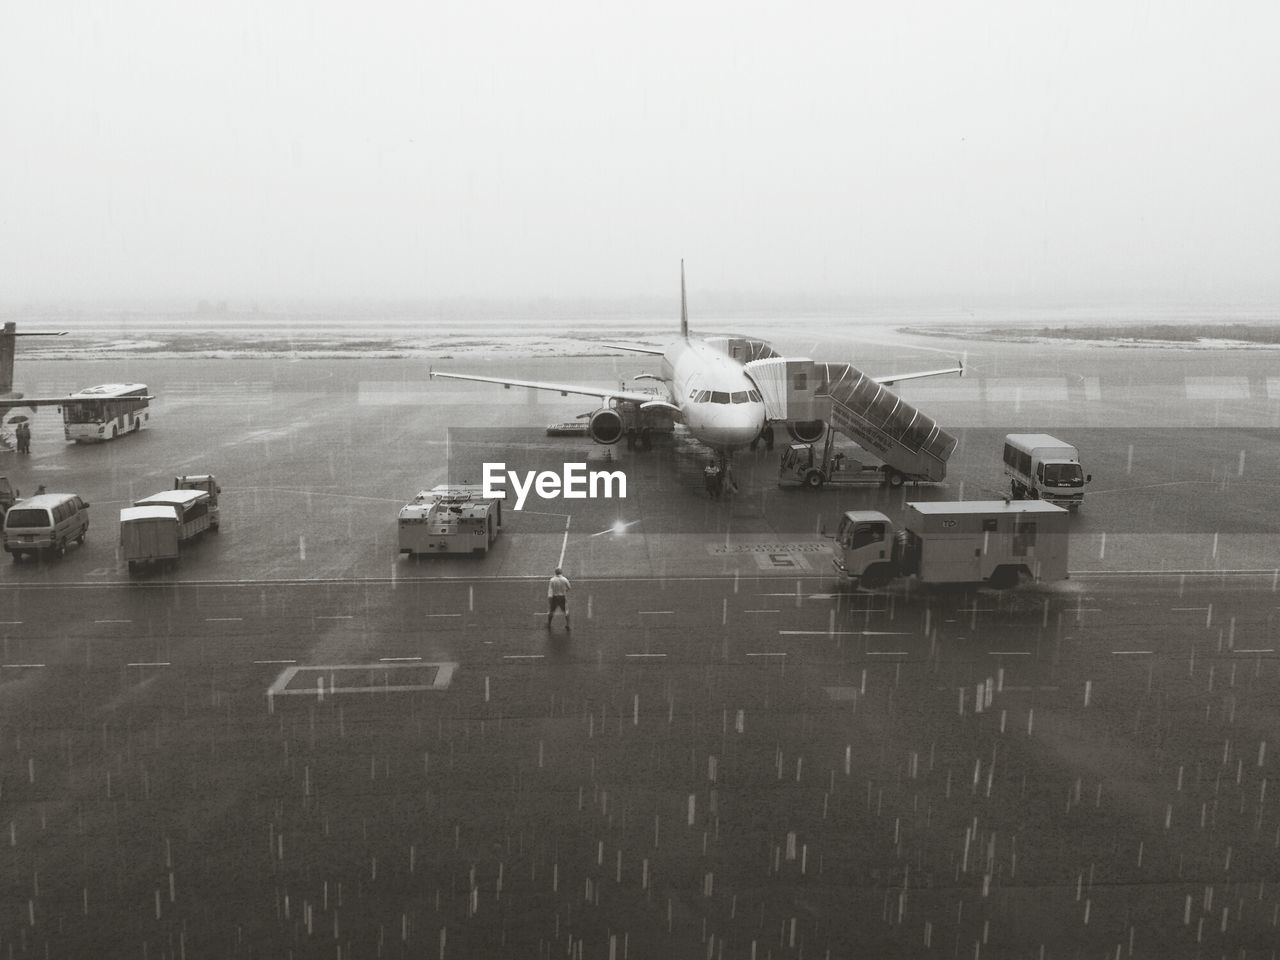 Airplane on airport runway against clear sky at monsoon